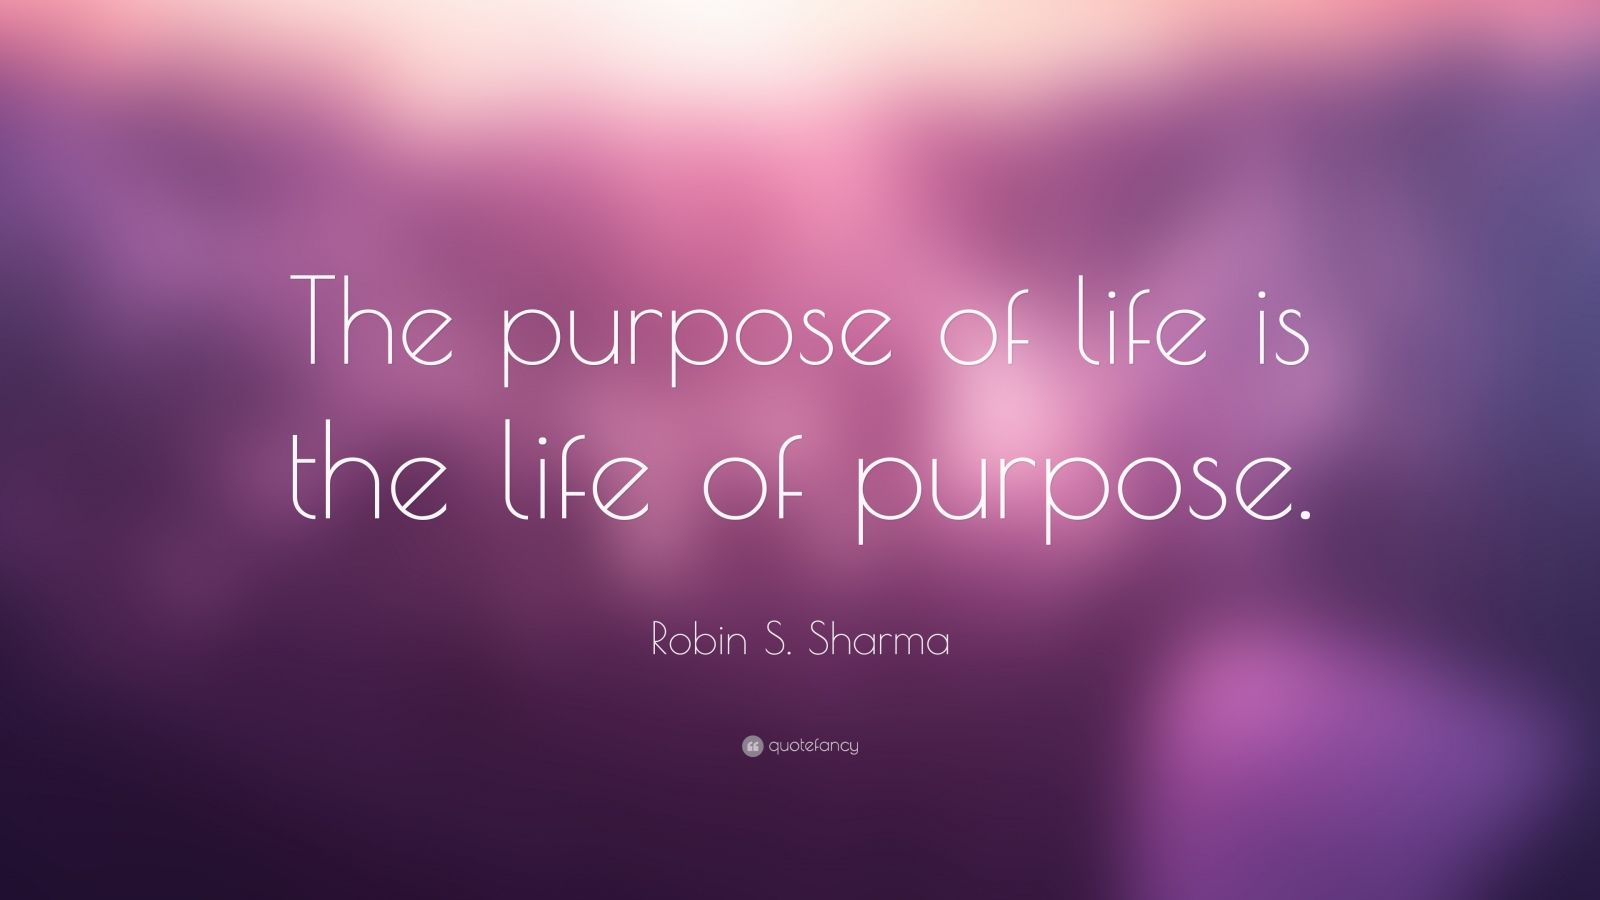 purpuse of life What is the purpose of life what is the meaning of it why are we here is there a god or isn't there which religion is the most correct.